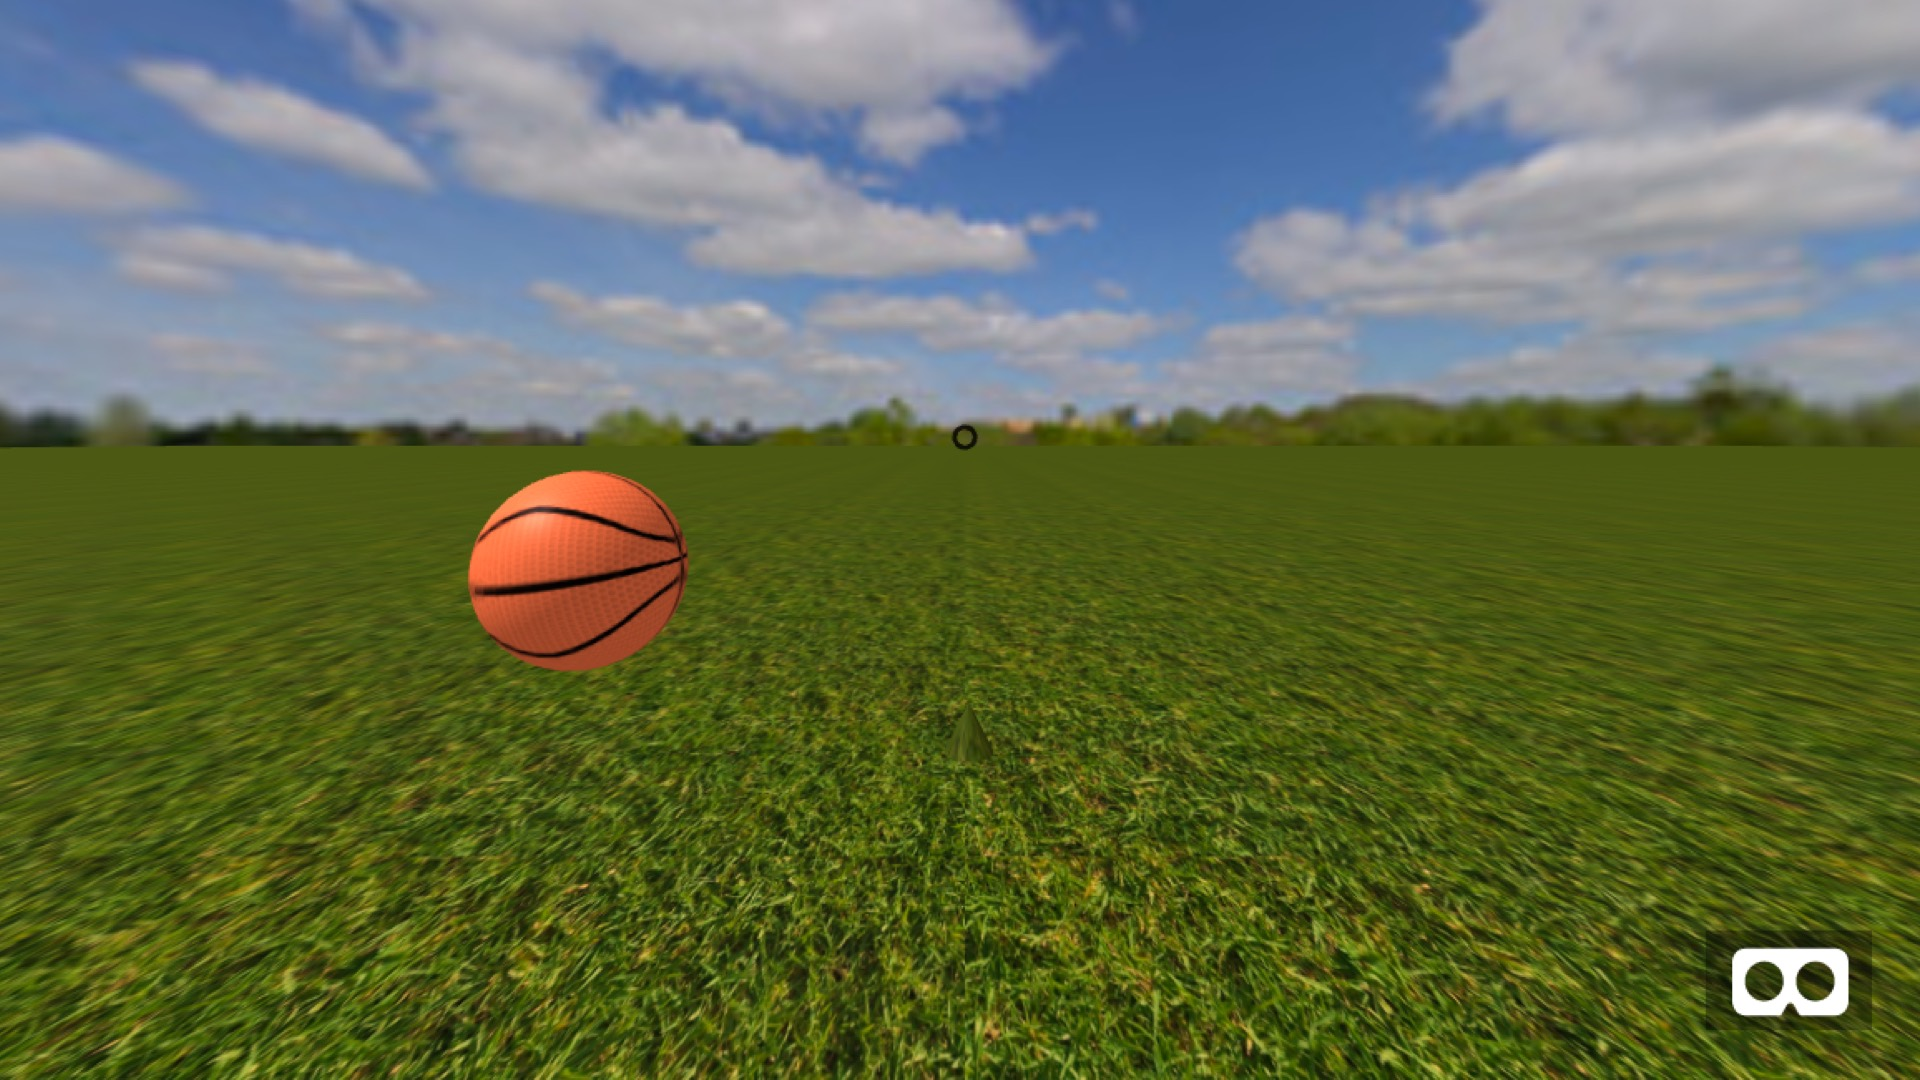 Gaze Ball Game